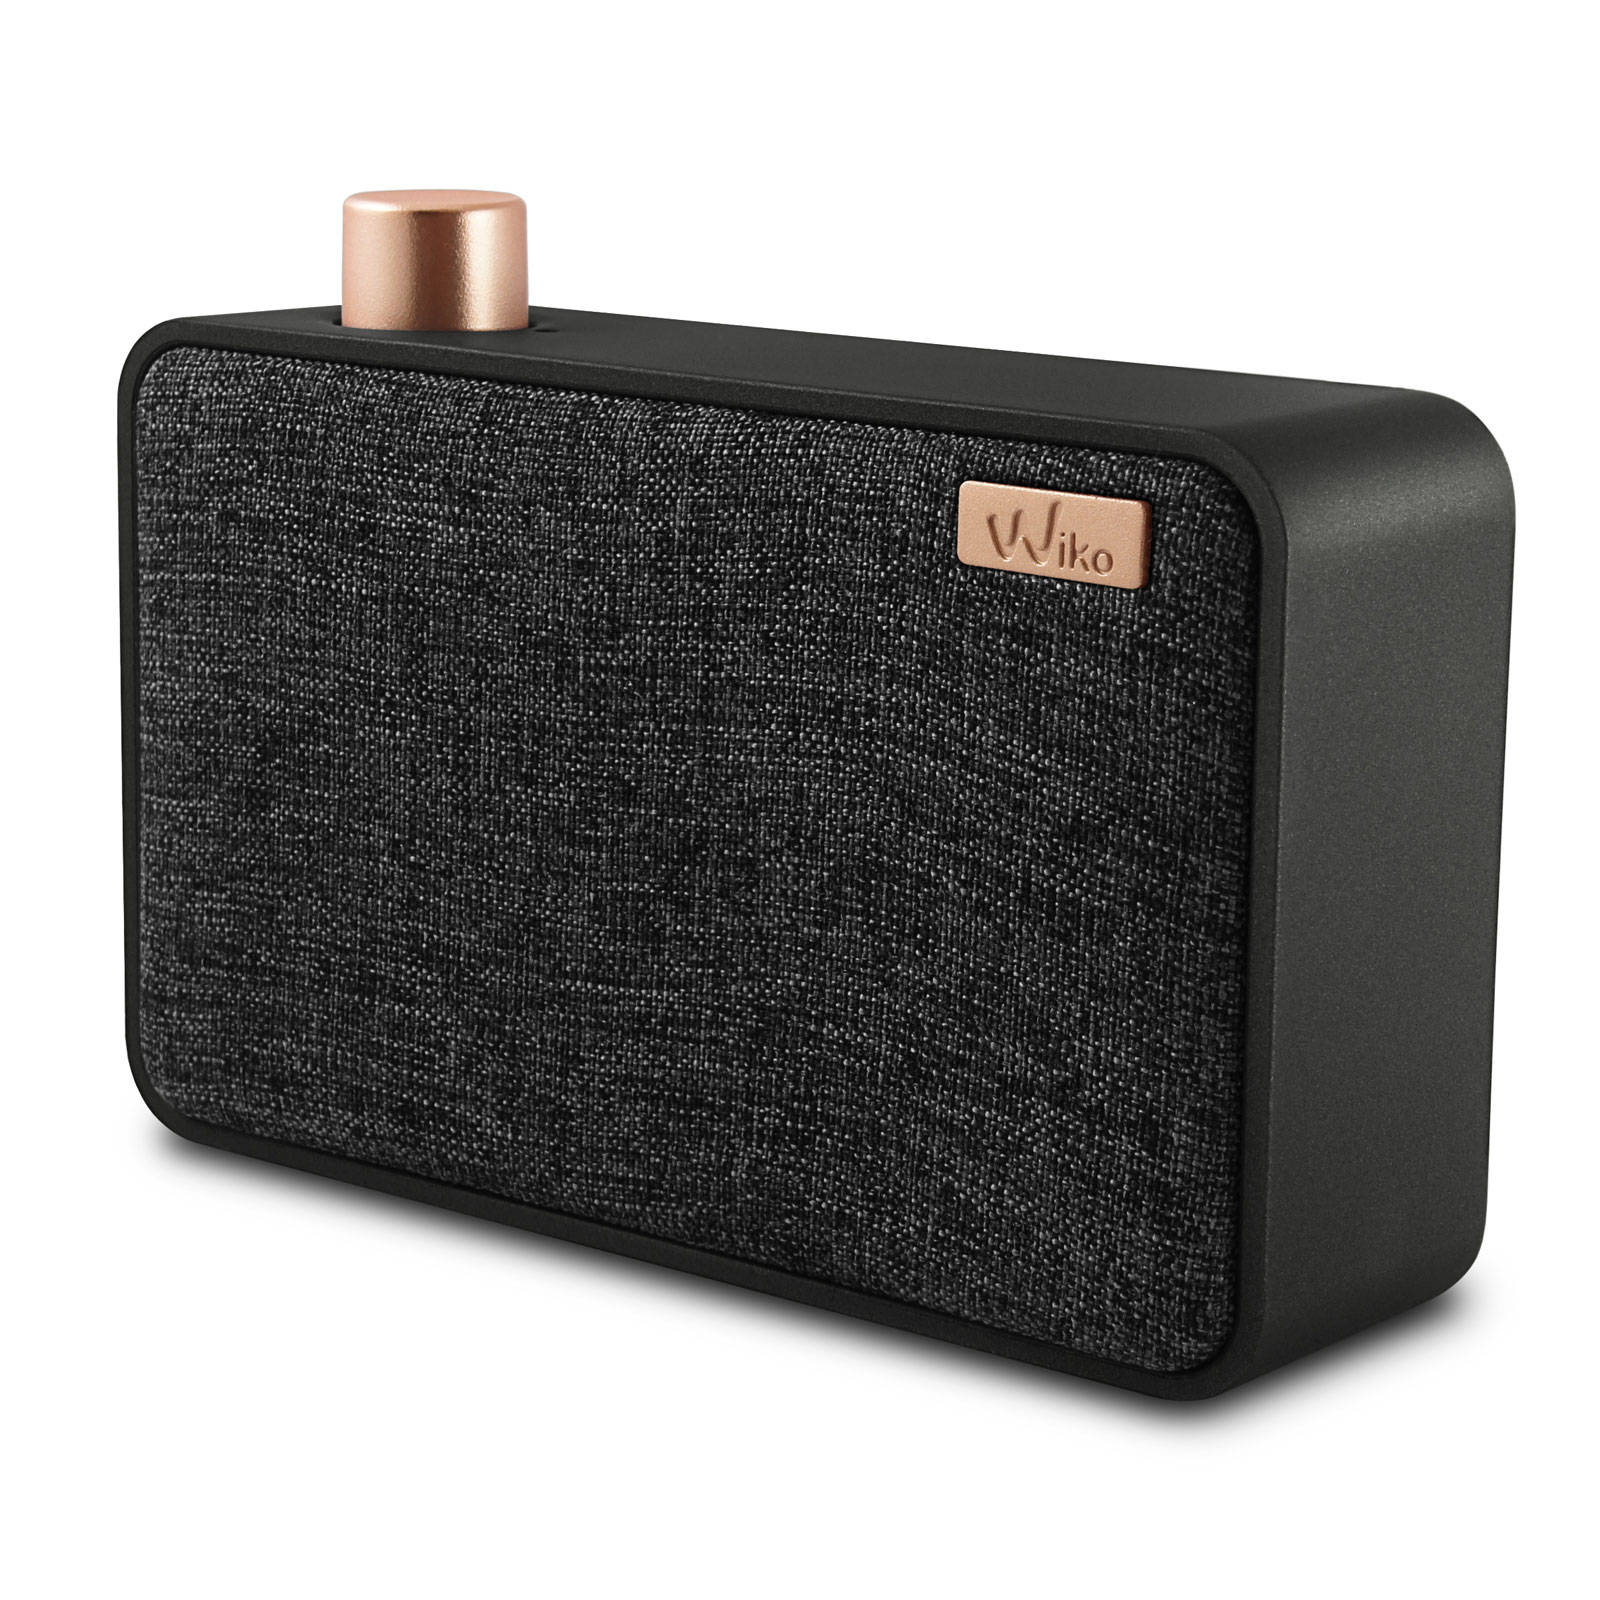 wiko wishake wireless speaker noir wkauspkbks1 achat vente dock enceinte bluetooth sur. Black Bedroom Furniture Sets. Home Design Ideas